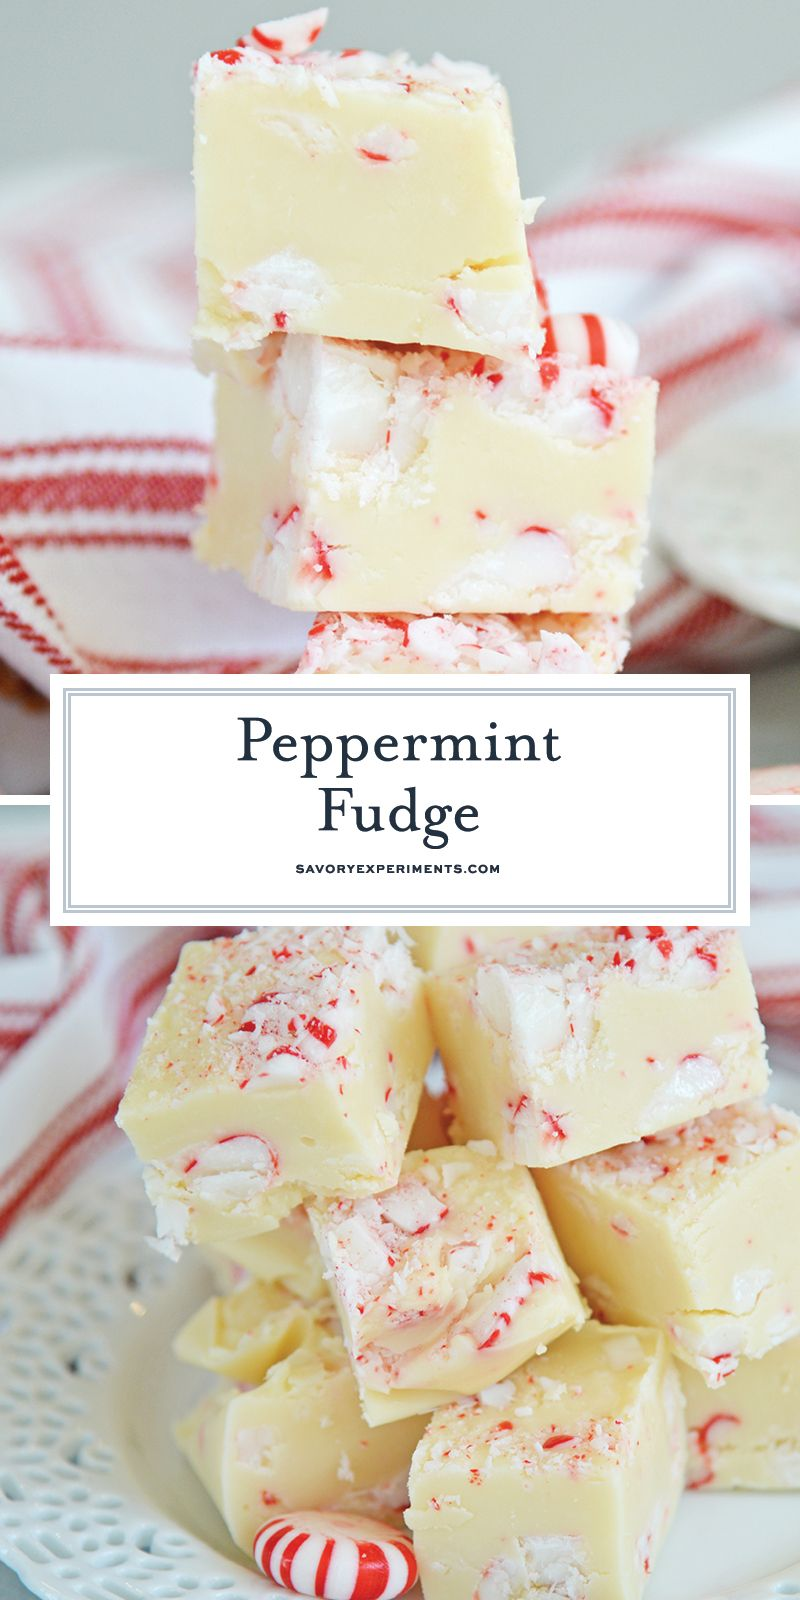 Peppermint Fudge Is An Easy Fudge Recipe Using Sweetened Condensed Milk And White Chocolate Perfect For Peppermint Fudge Peppermint Fudge Recipe Fudge Recipes